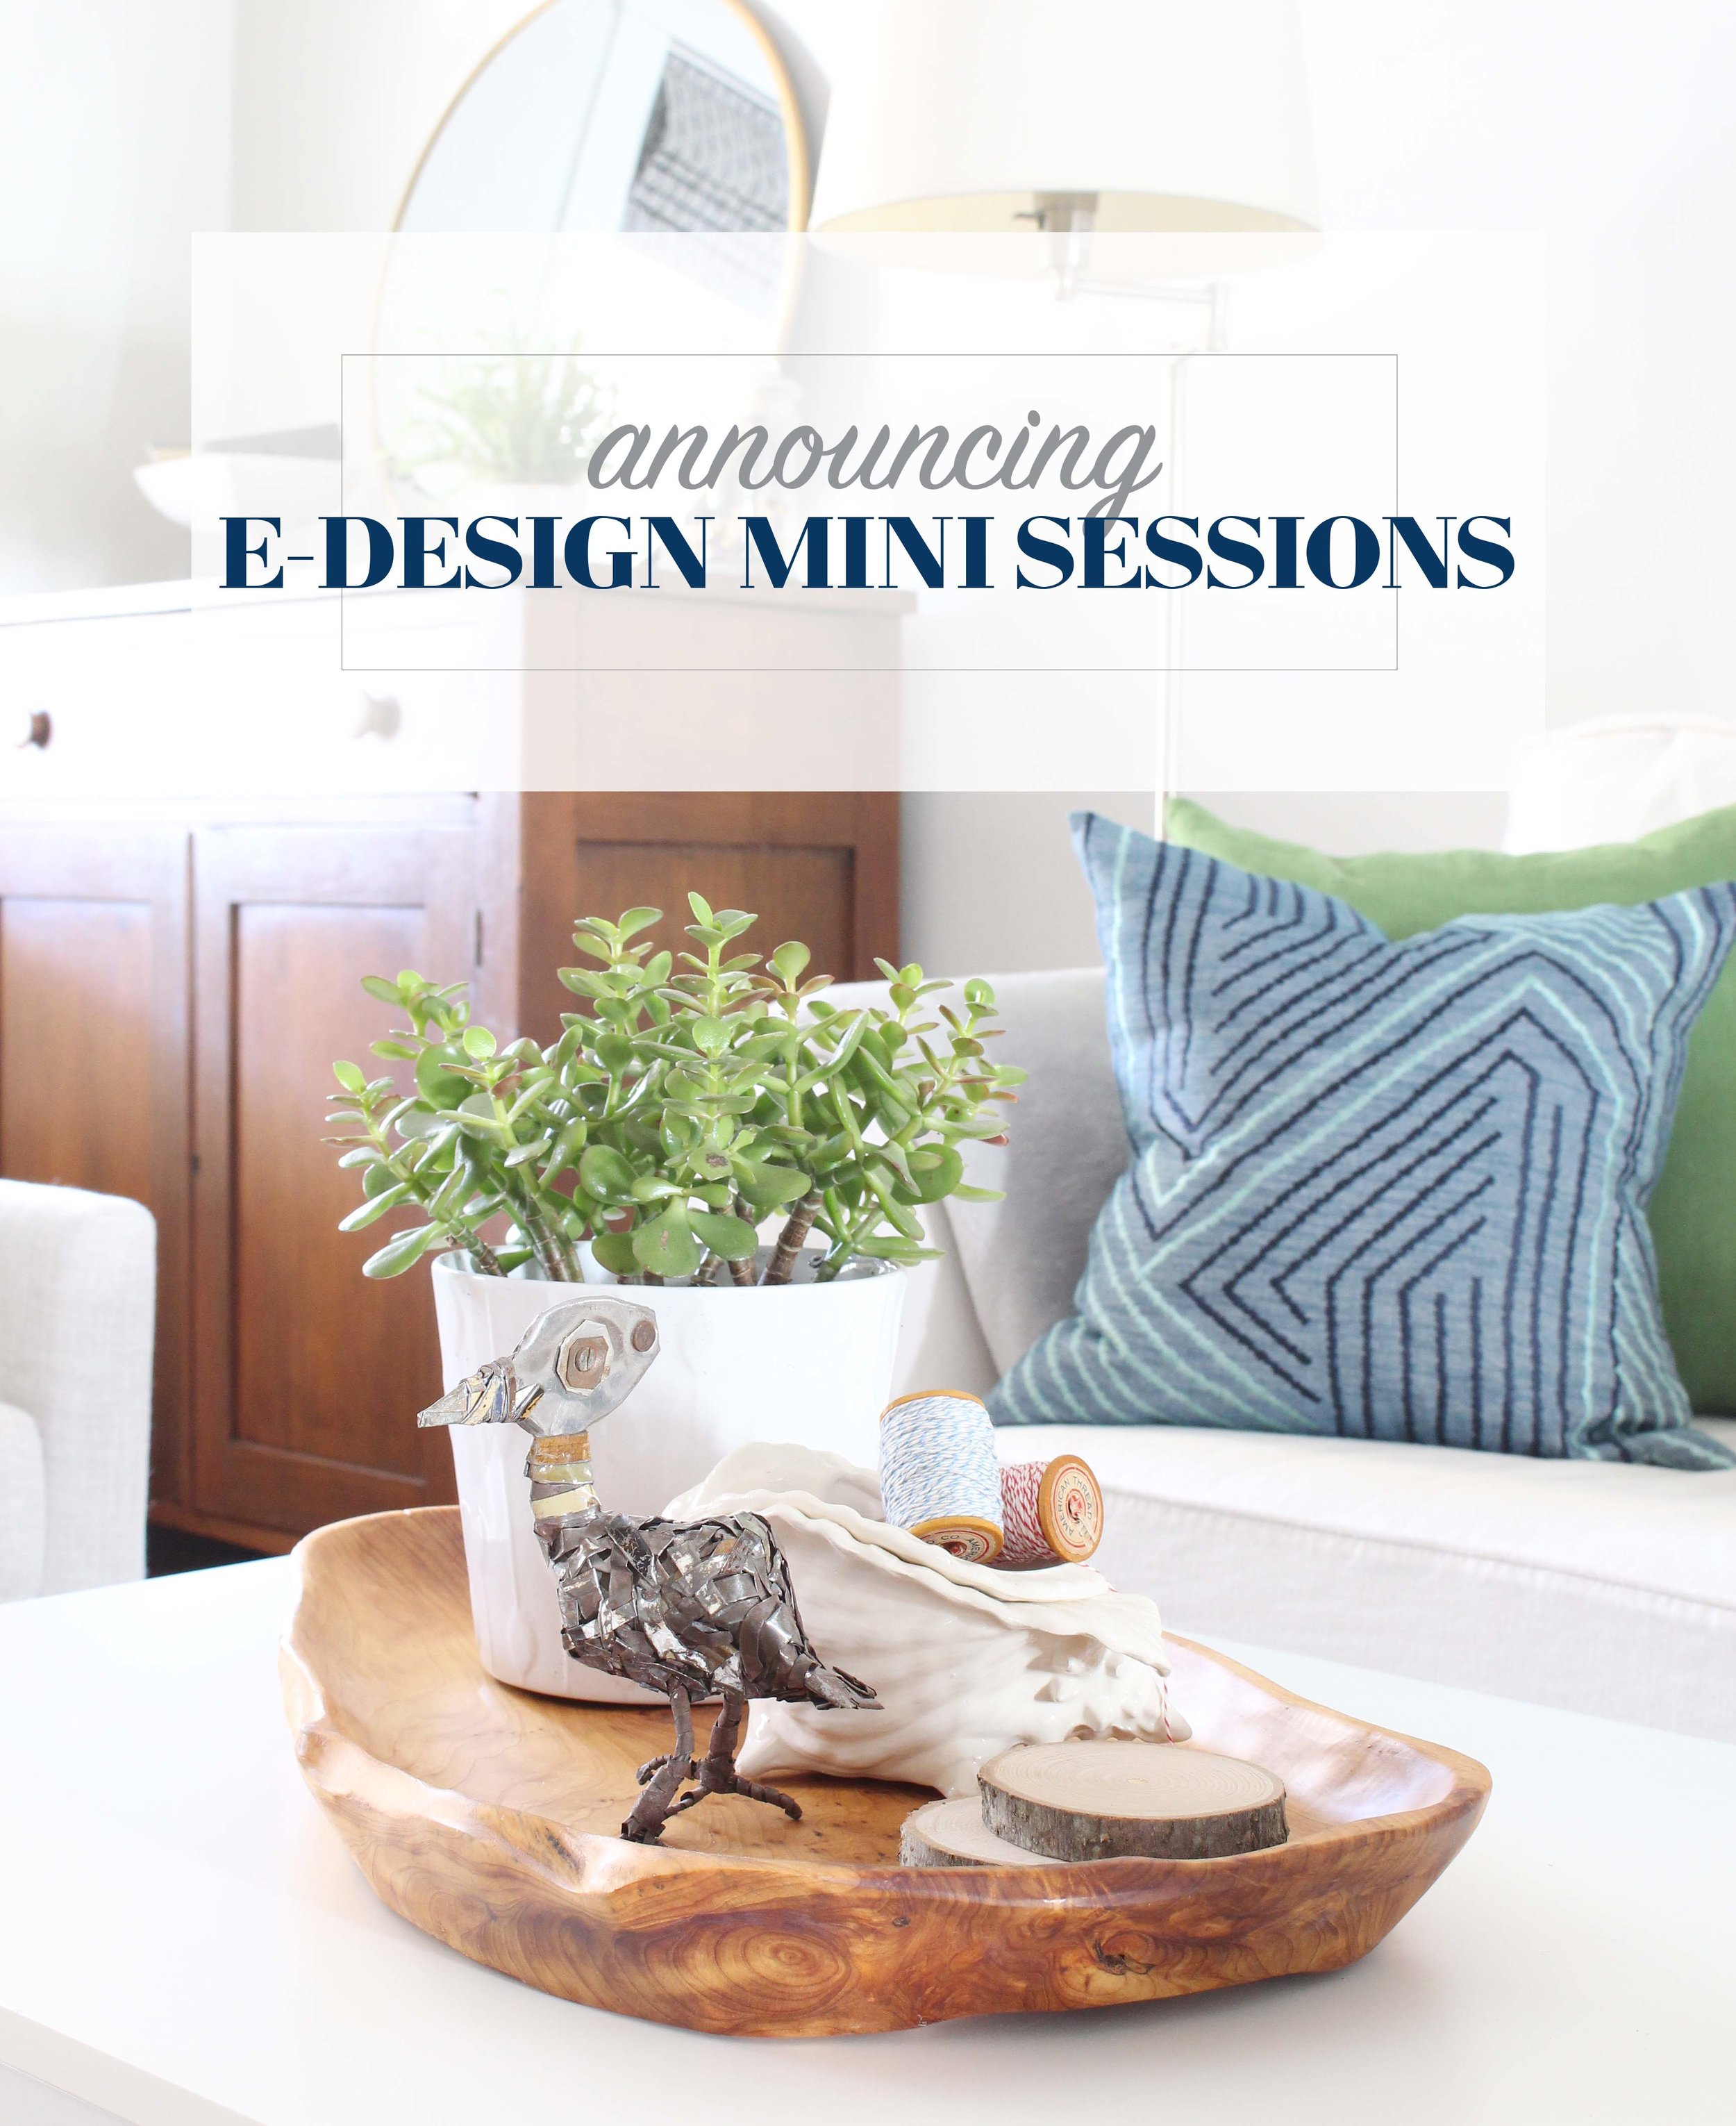 Sign up for an e-design mini session between May 1st and 15th for only $75! This is your chance to get ideas to solve your most pressing design dilemmas. Sign up now, and pick your one hour time slot for a video chat between May 1st and June 30th, 2017.